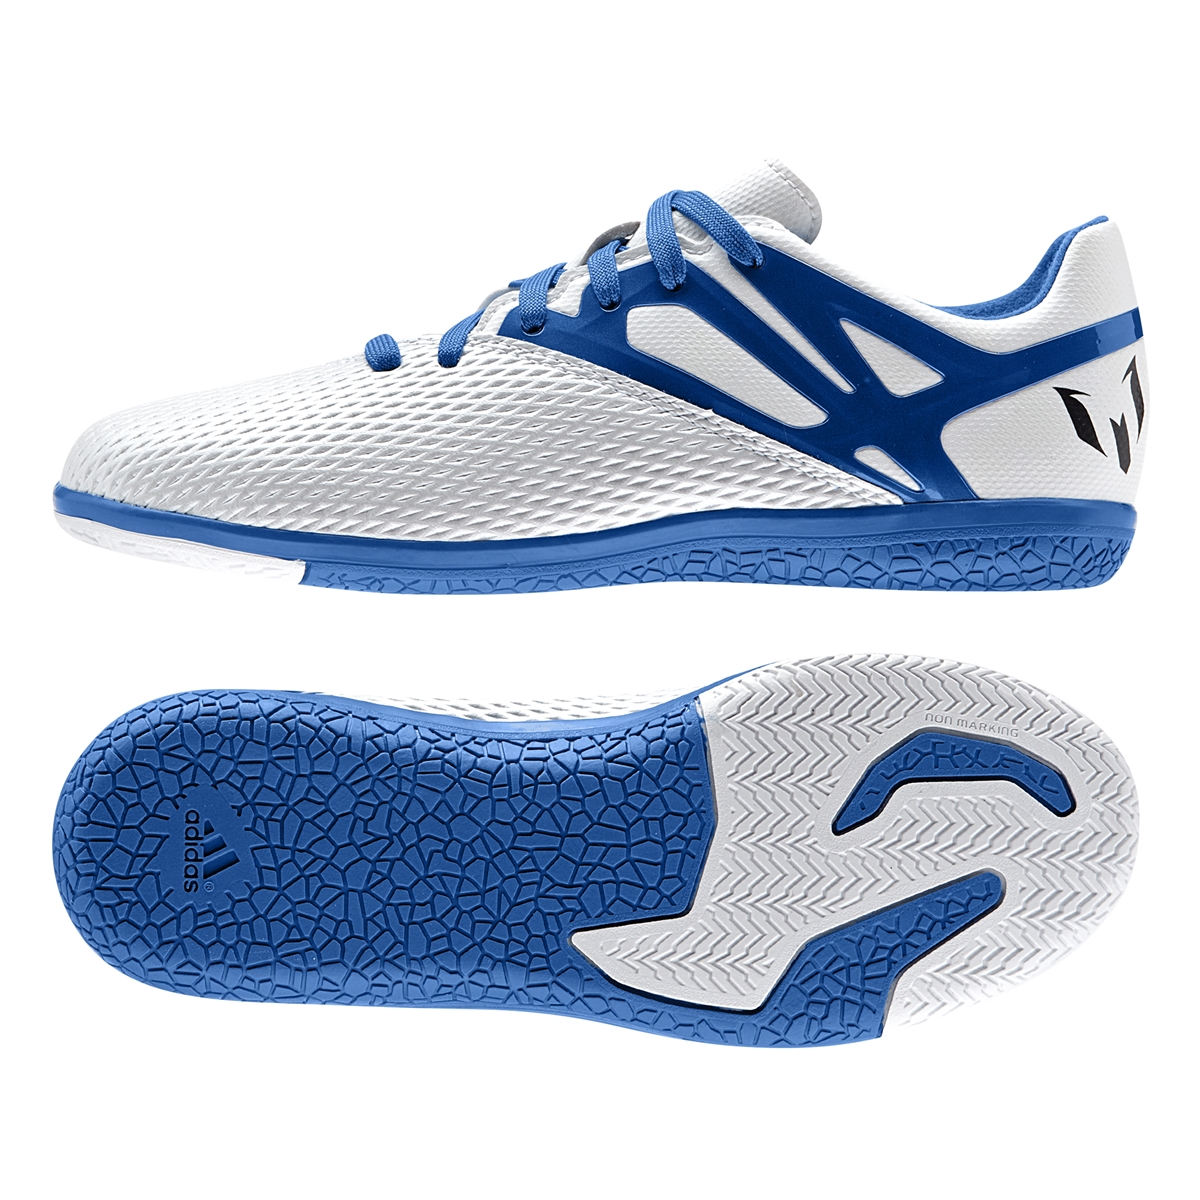 Blue And White Indoor Soccer Shoes